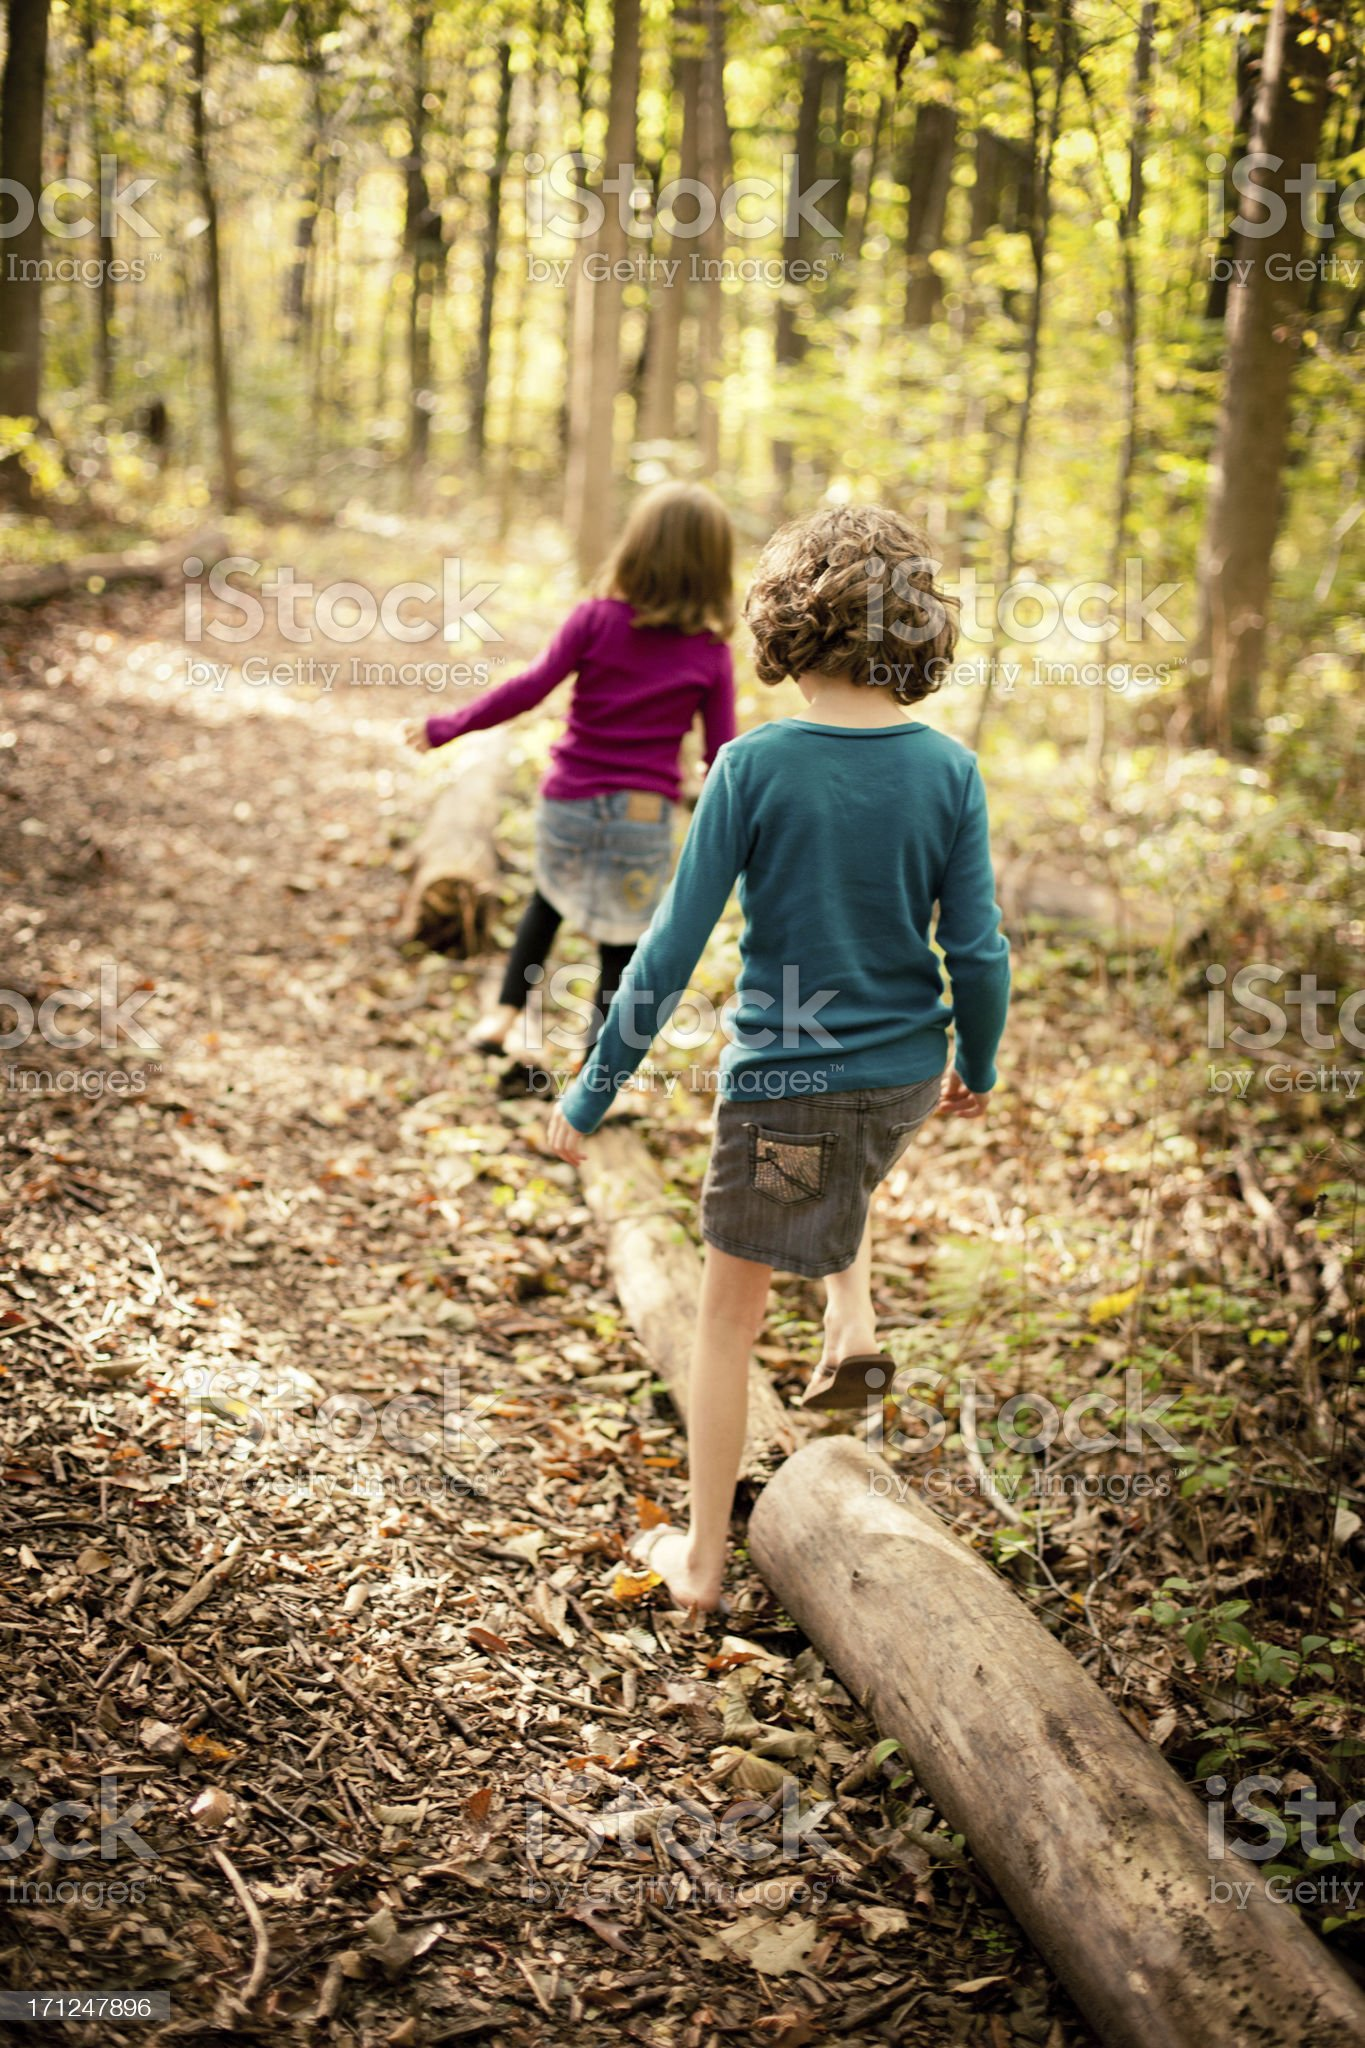 Two Sisters Walking Through Woods Together on Autumn Day royalty-free stock photo